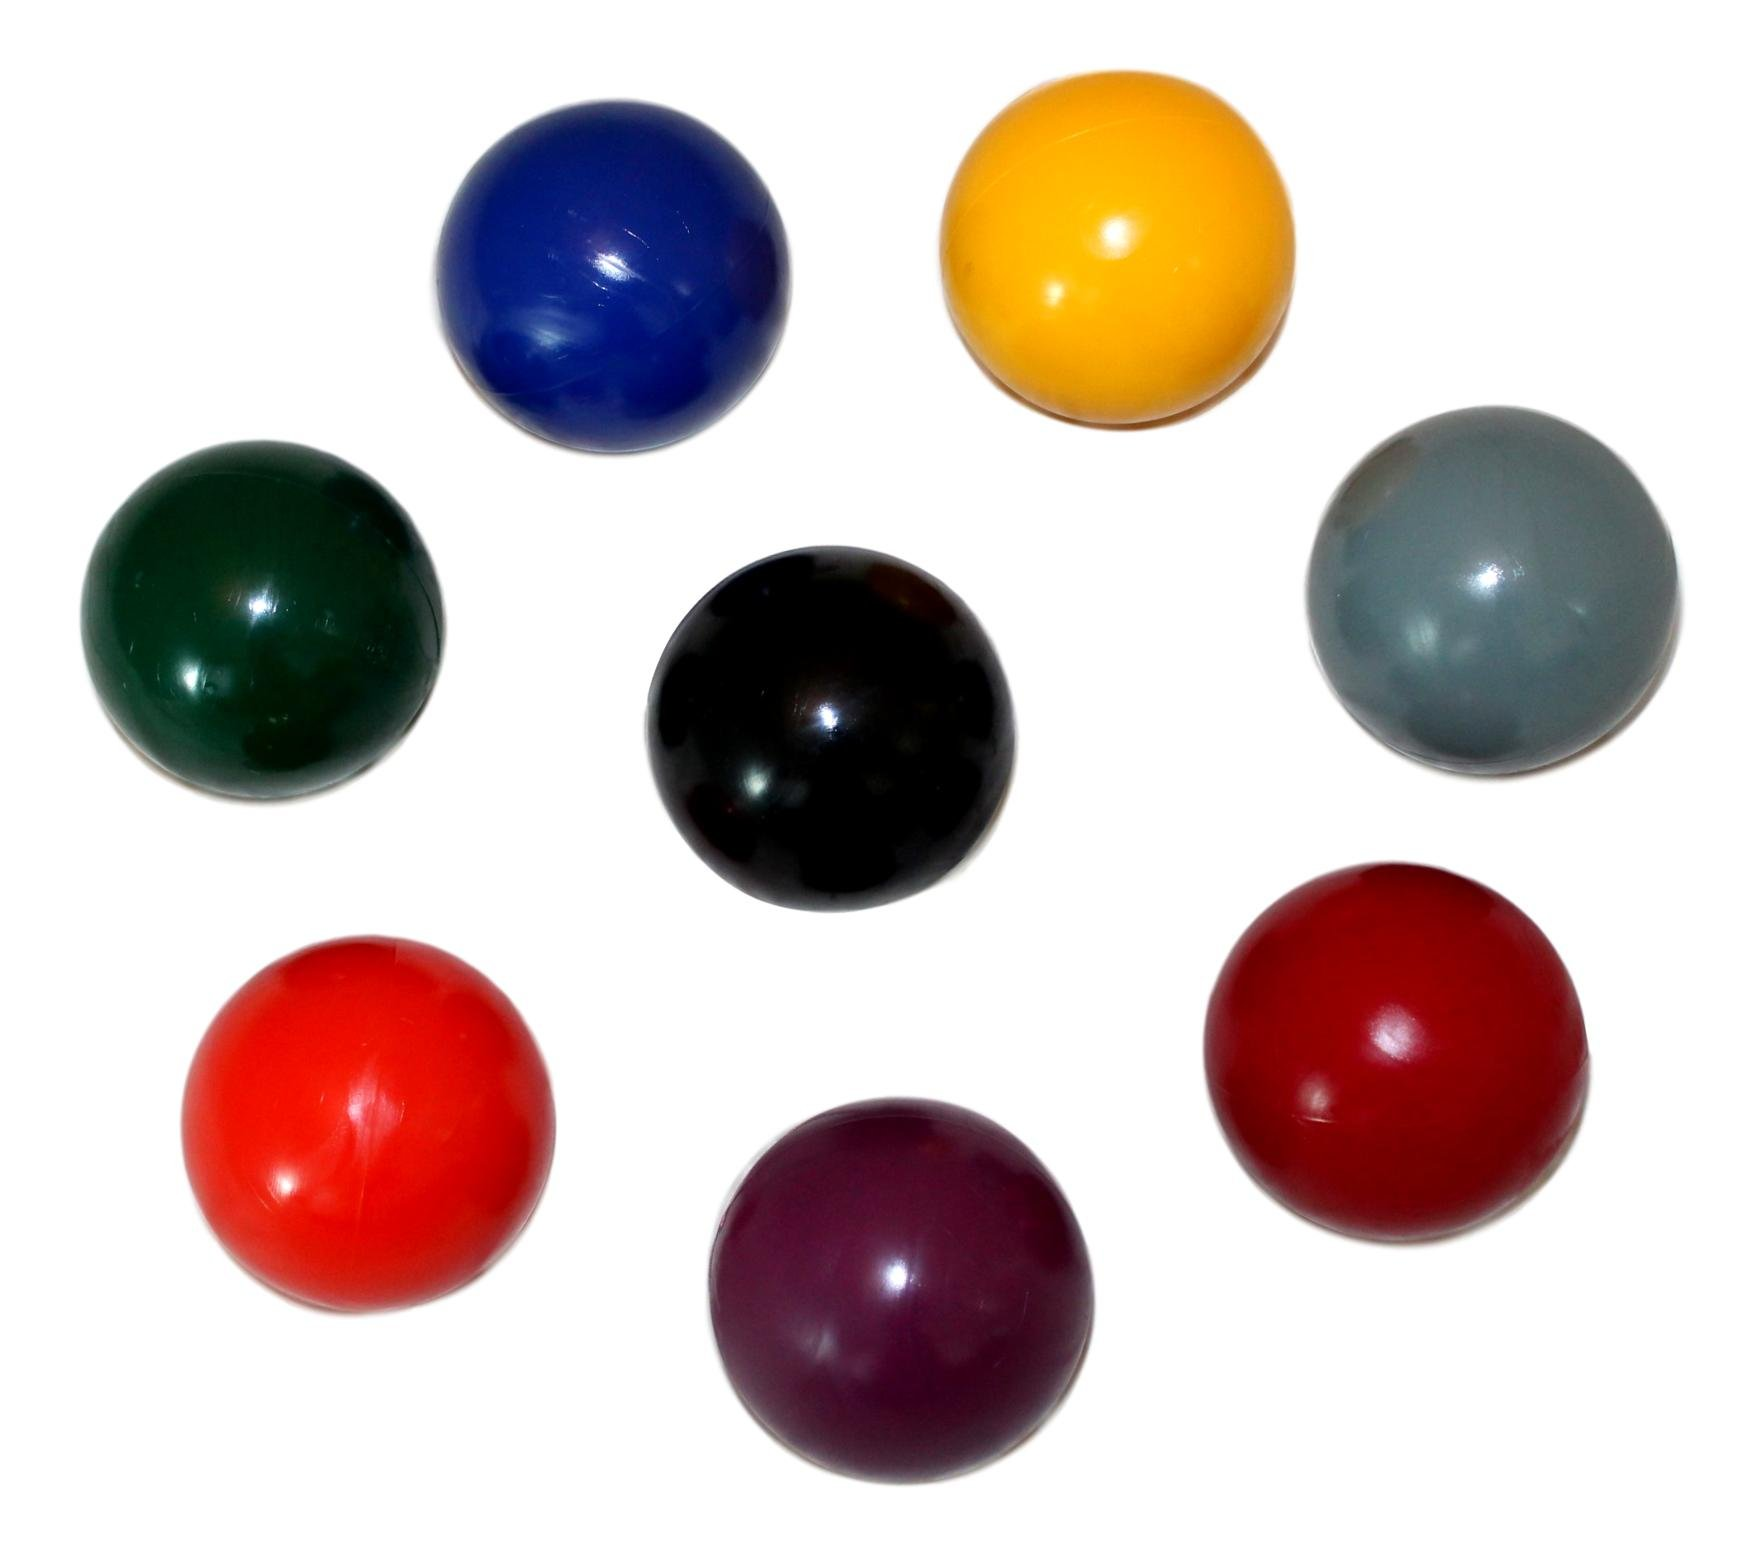 AmishToyBox.com Set of 8 Replacement Croquet Balls, Made in the USA, by AmishToyBox.com